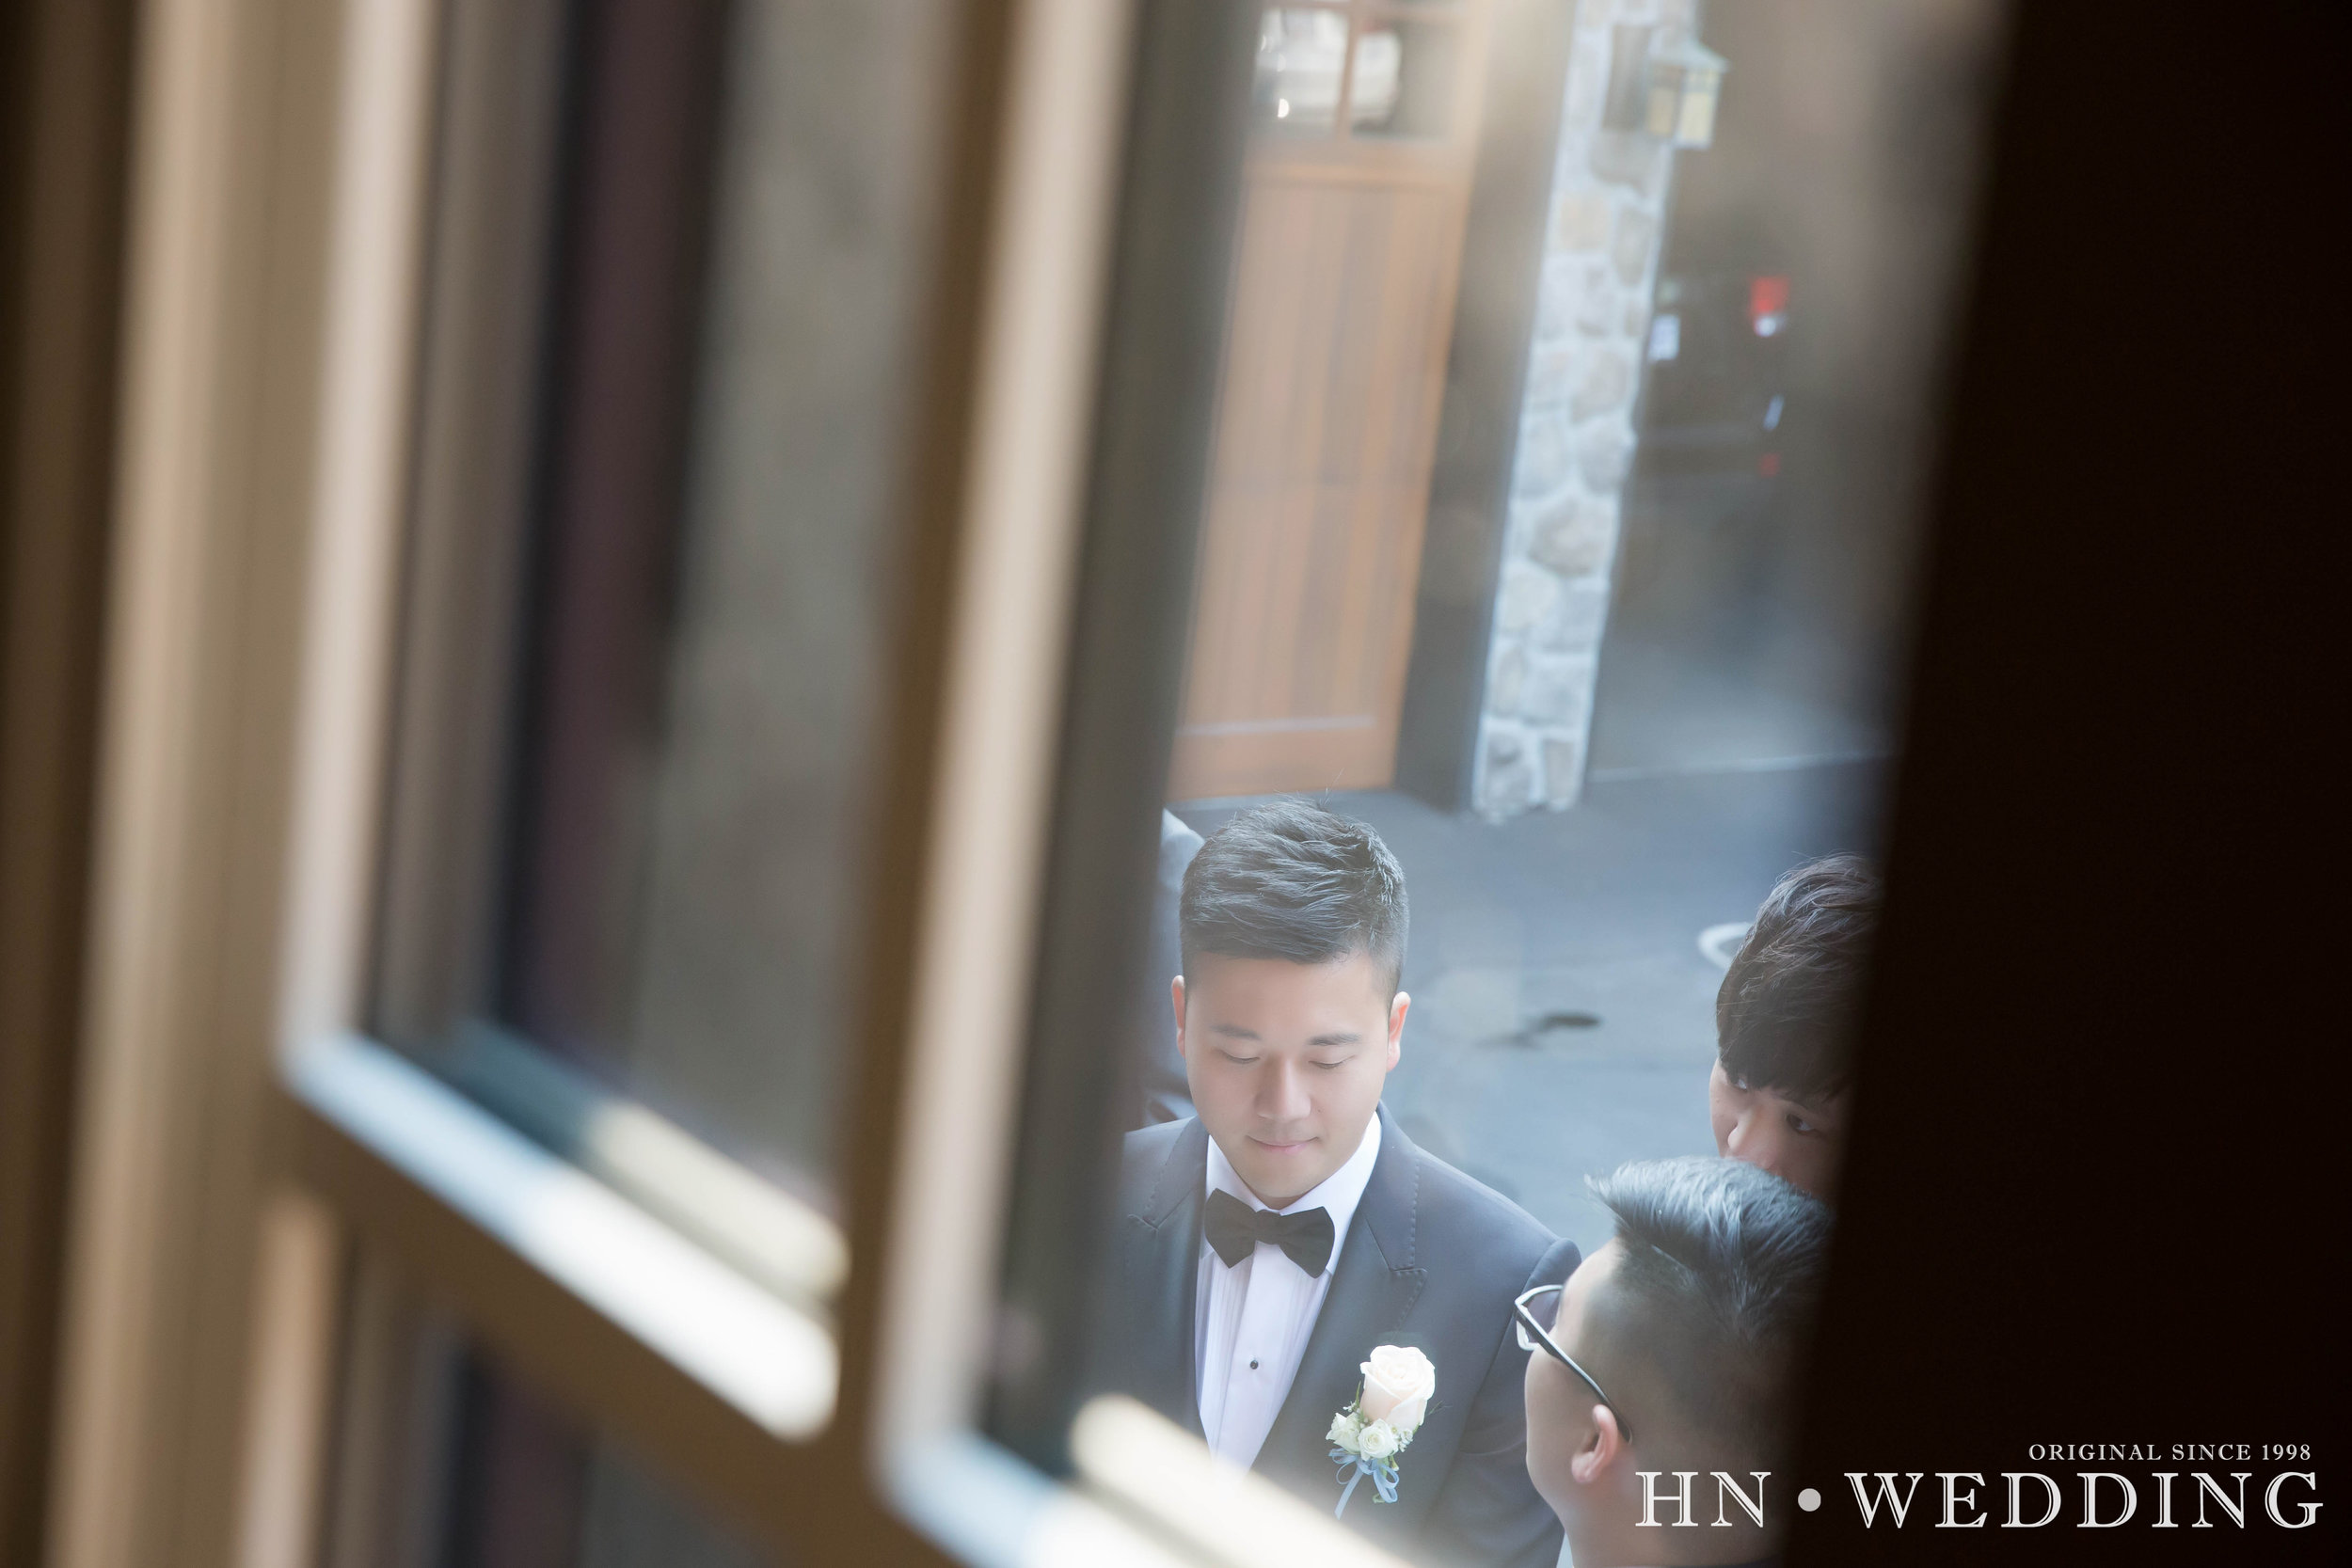 HNwedding20170811weddingday-15.jpg